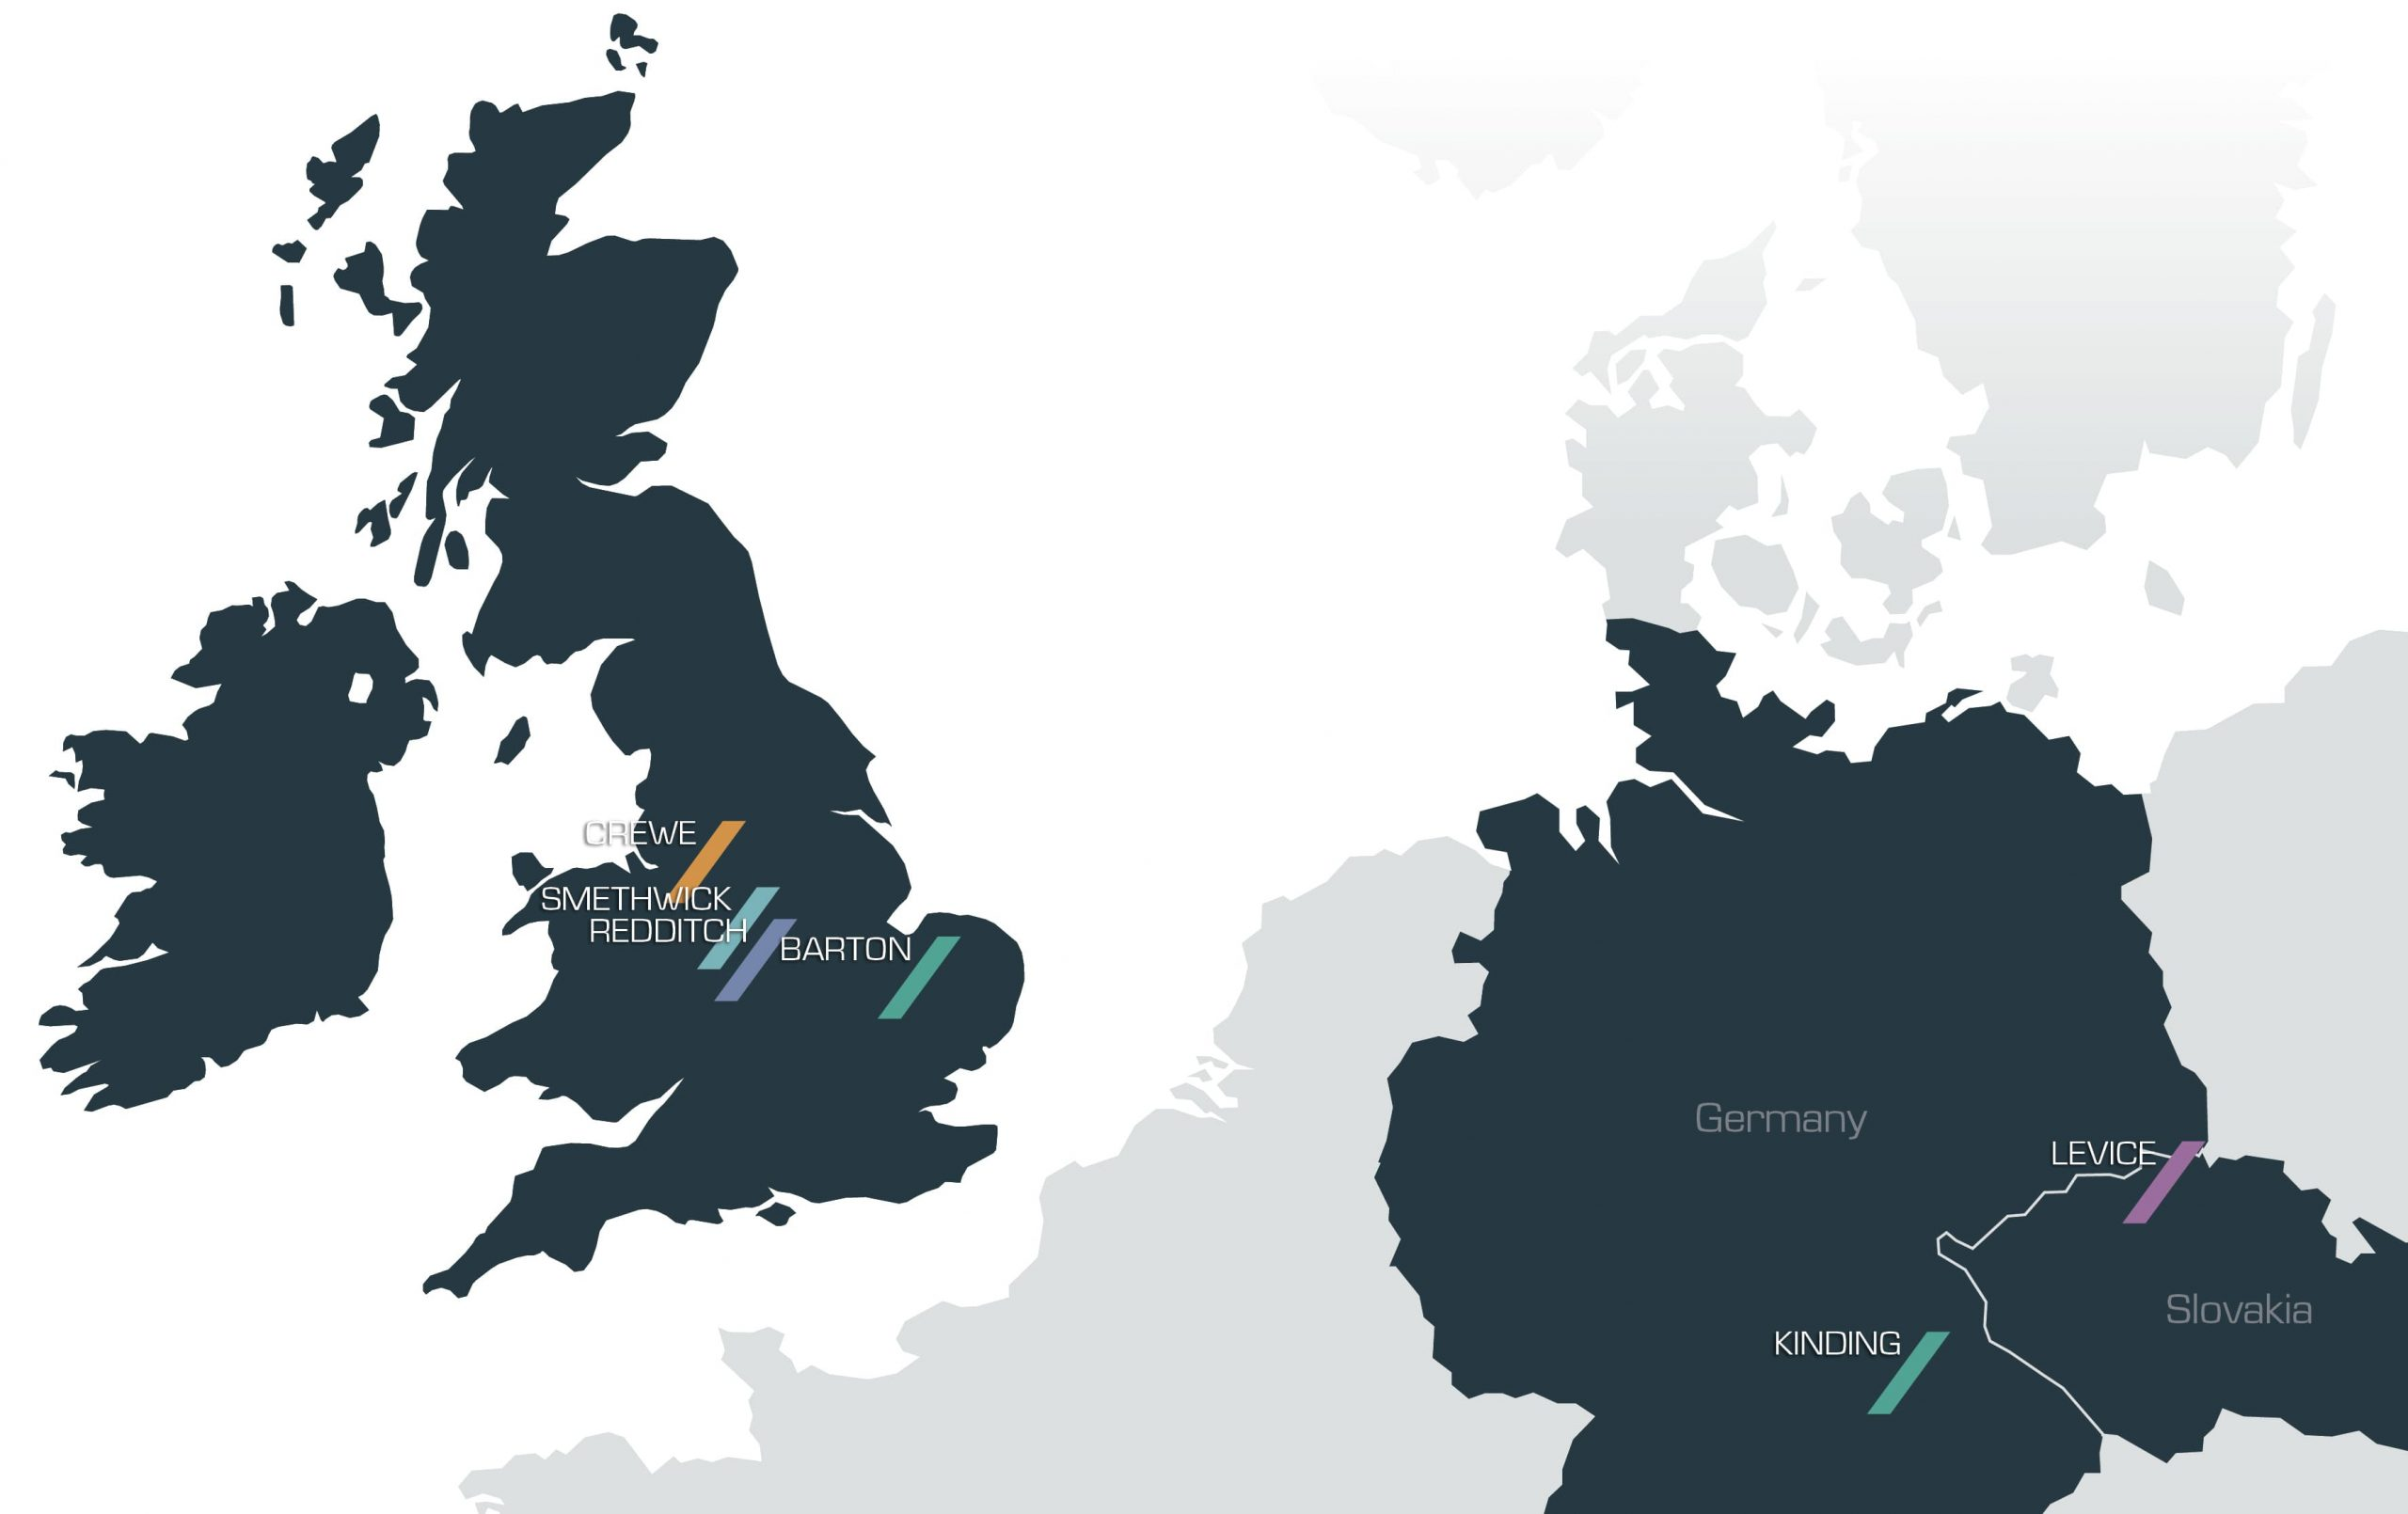 Map of client locations across UK and Europe